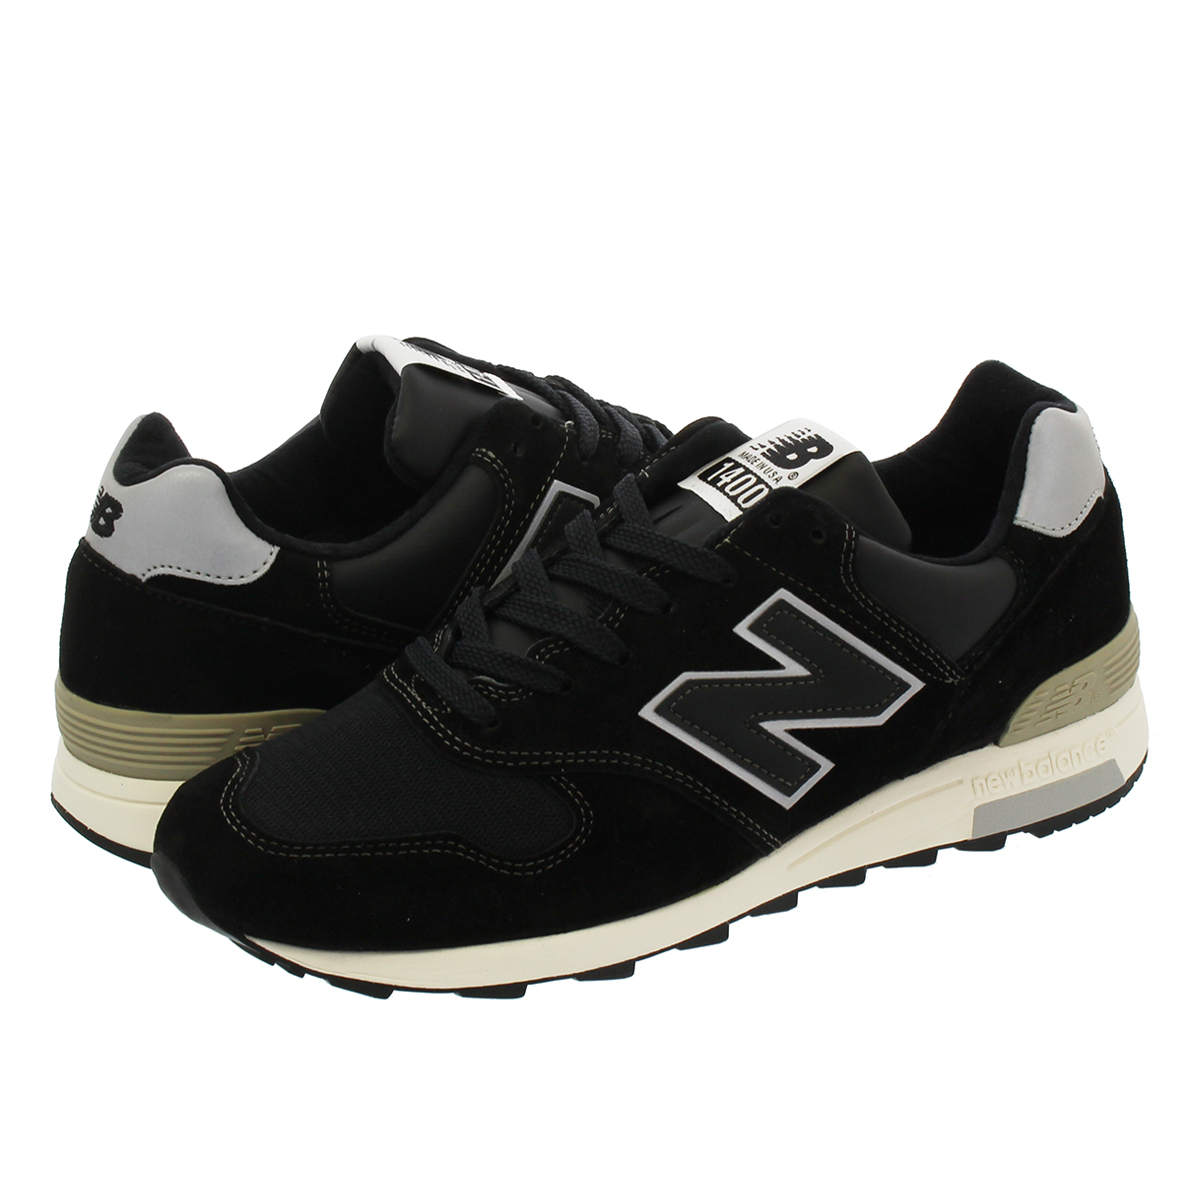 NEW BALANCE M1400BKS 【MADE IN U.S.A】 【Dワイズ】 ニューバランス M1400BKS BLACK/WHITE